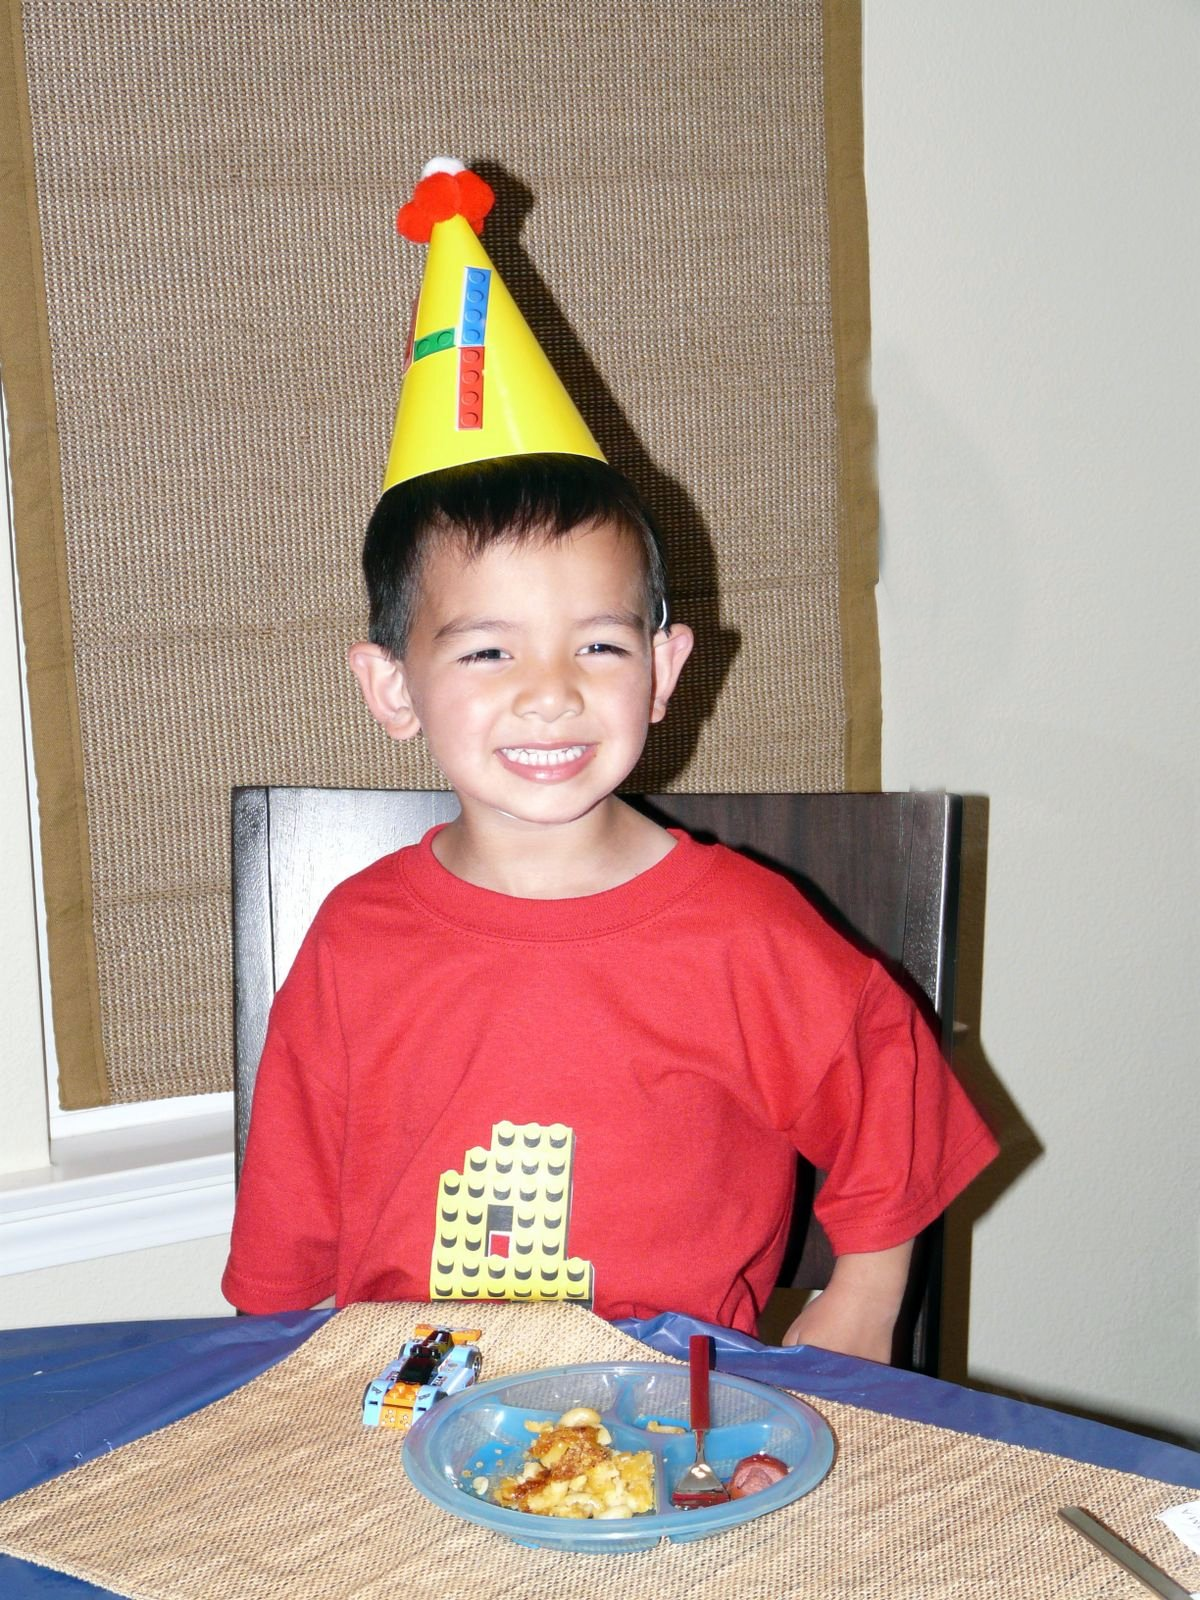 The Birthday Boy With His Custom Shirt And Lego Party Hat